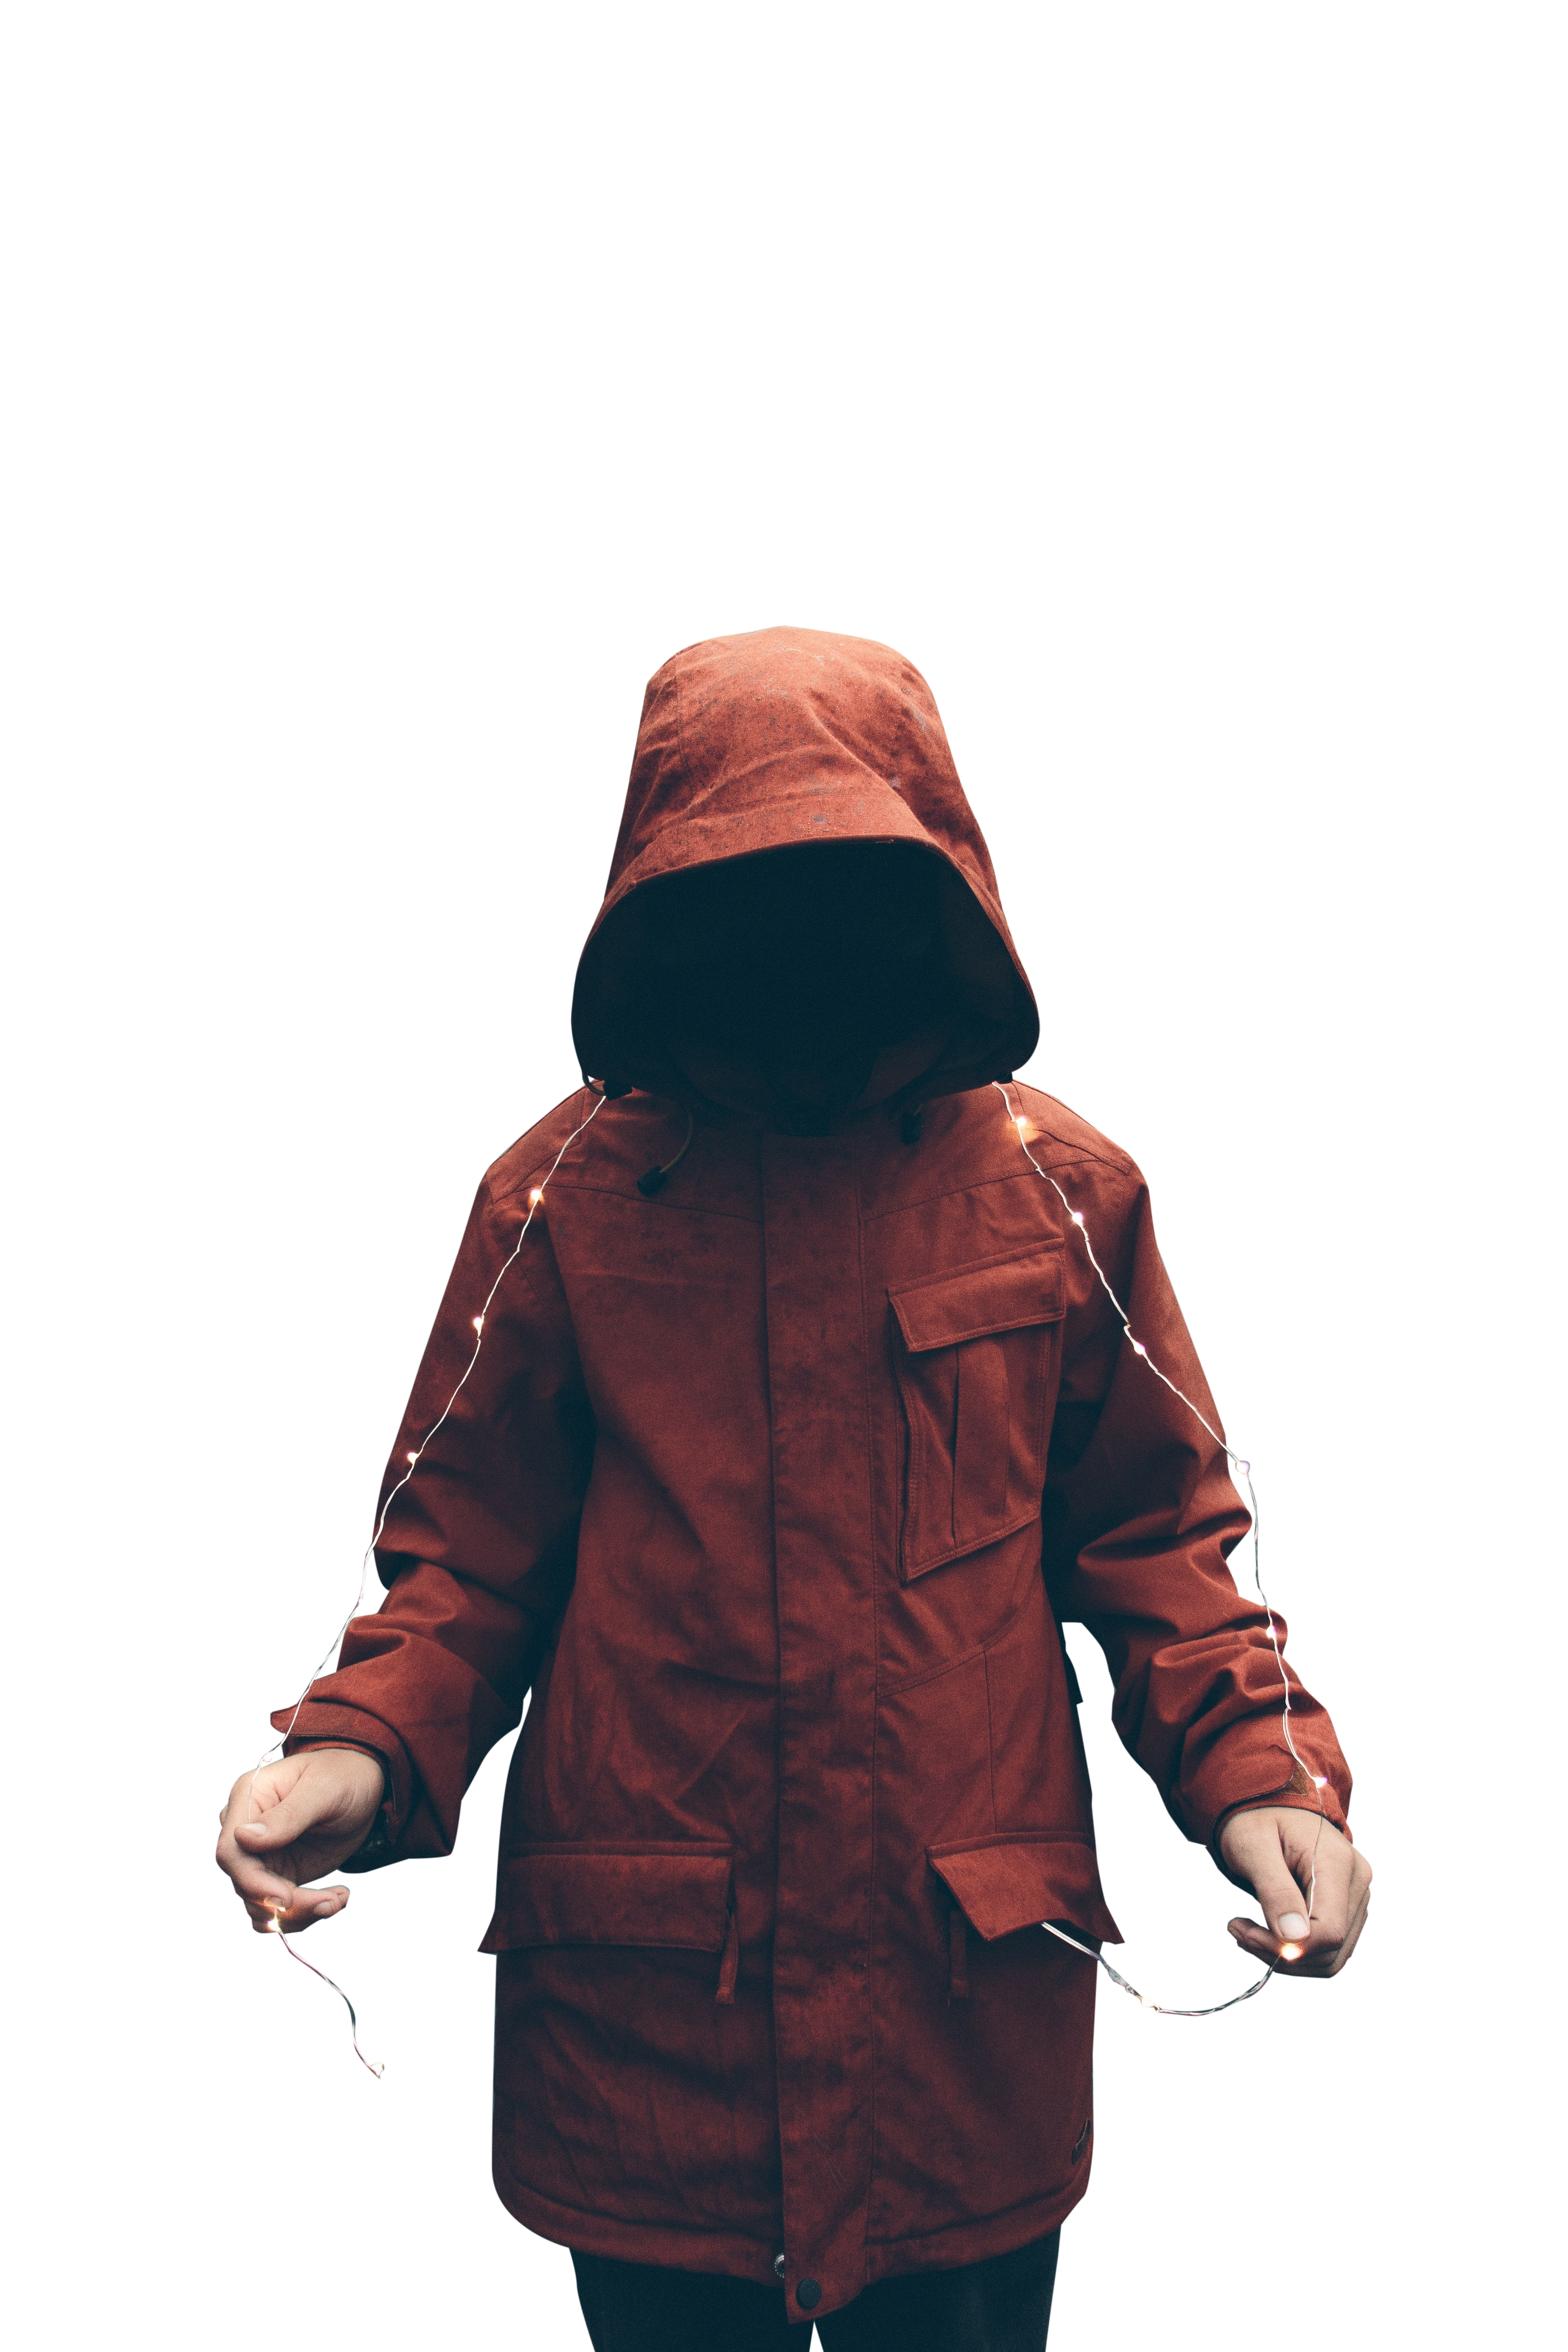 Black Hollow Man In Red Hood Transparent Background PNG